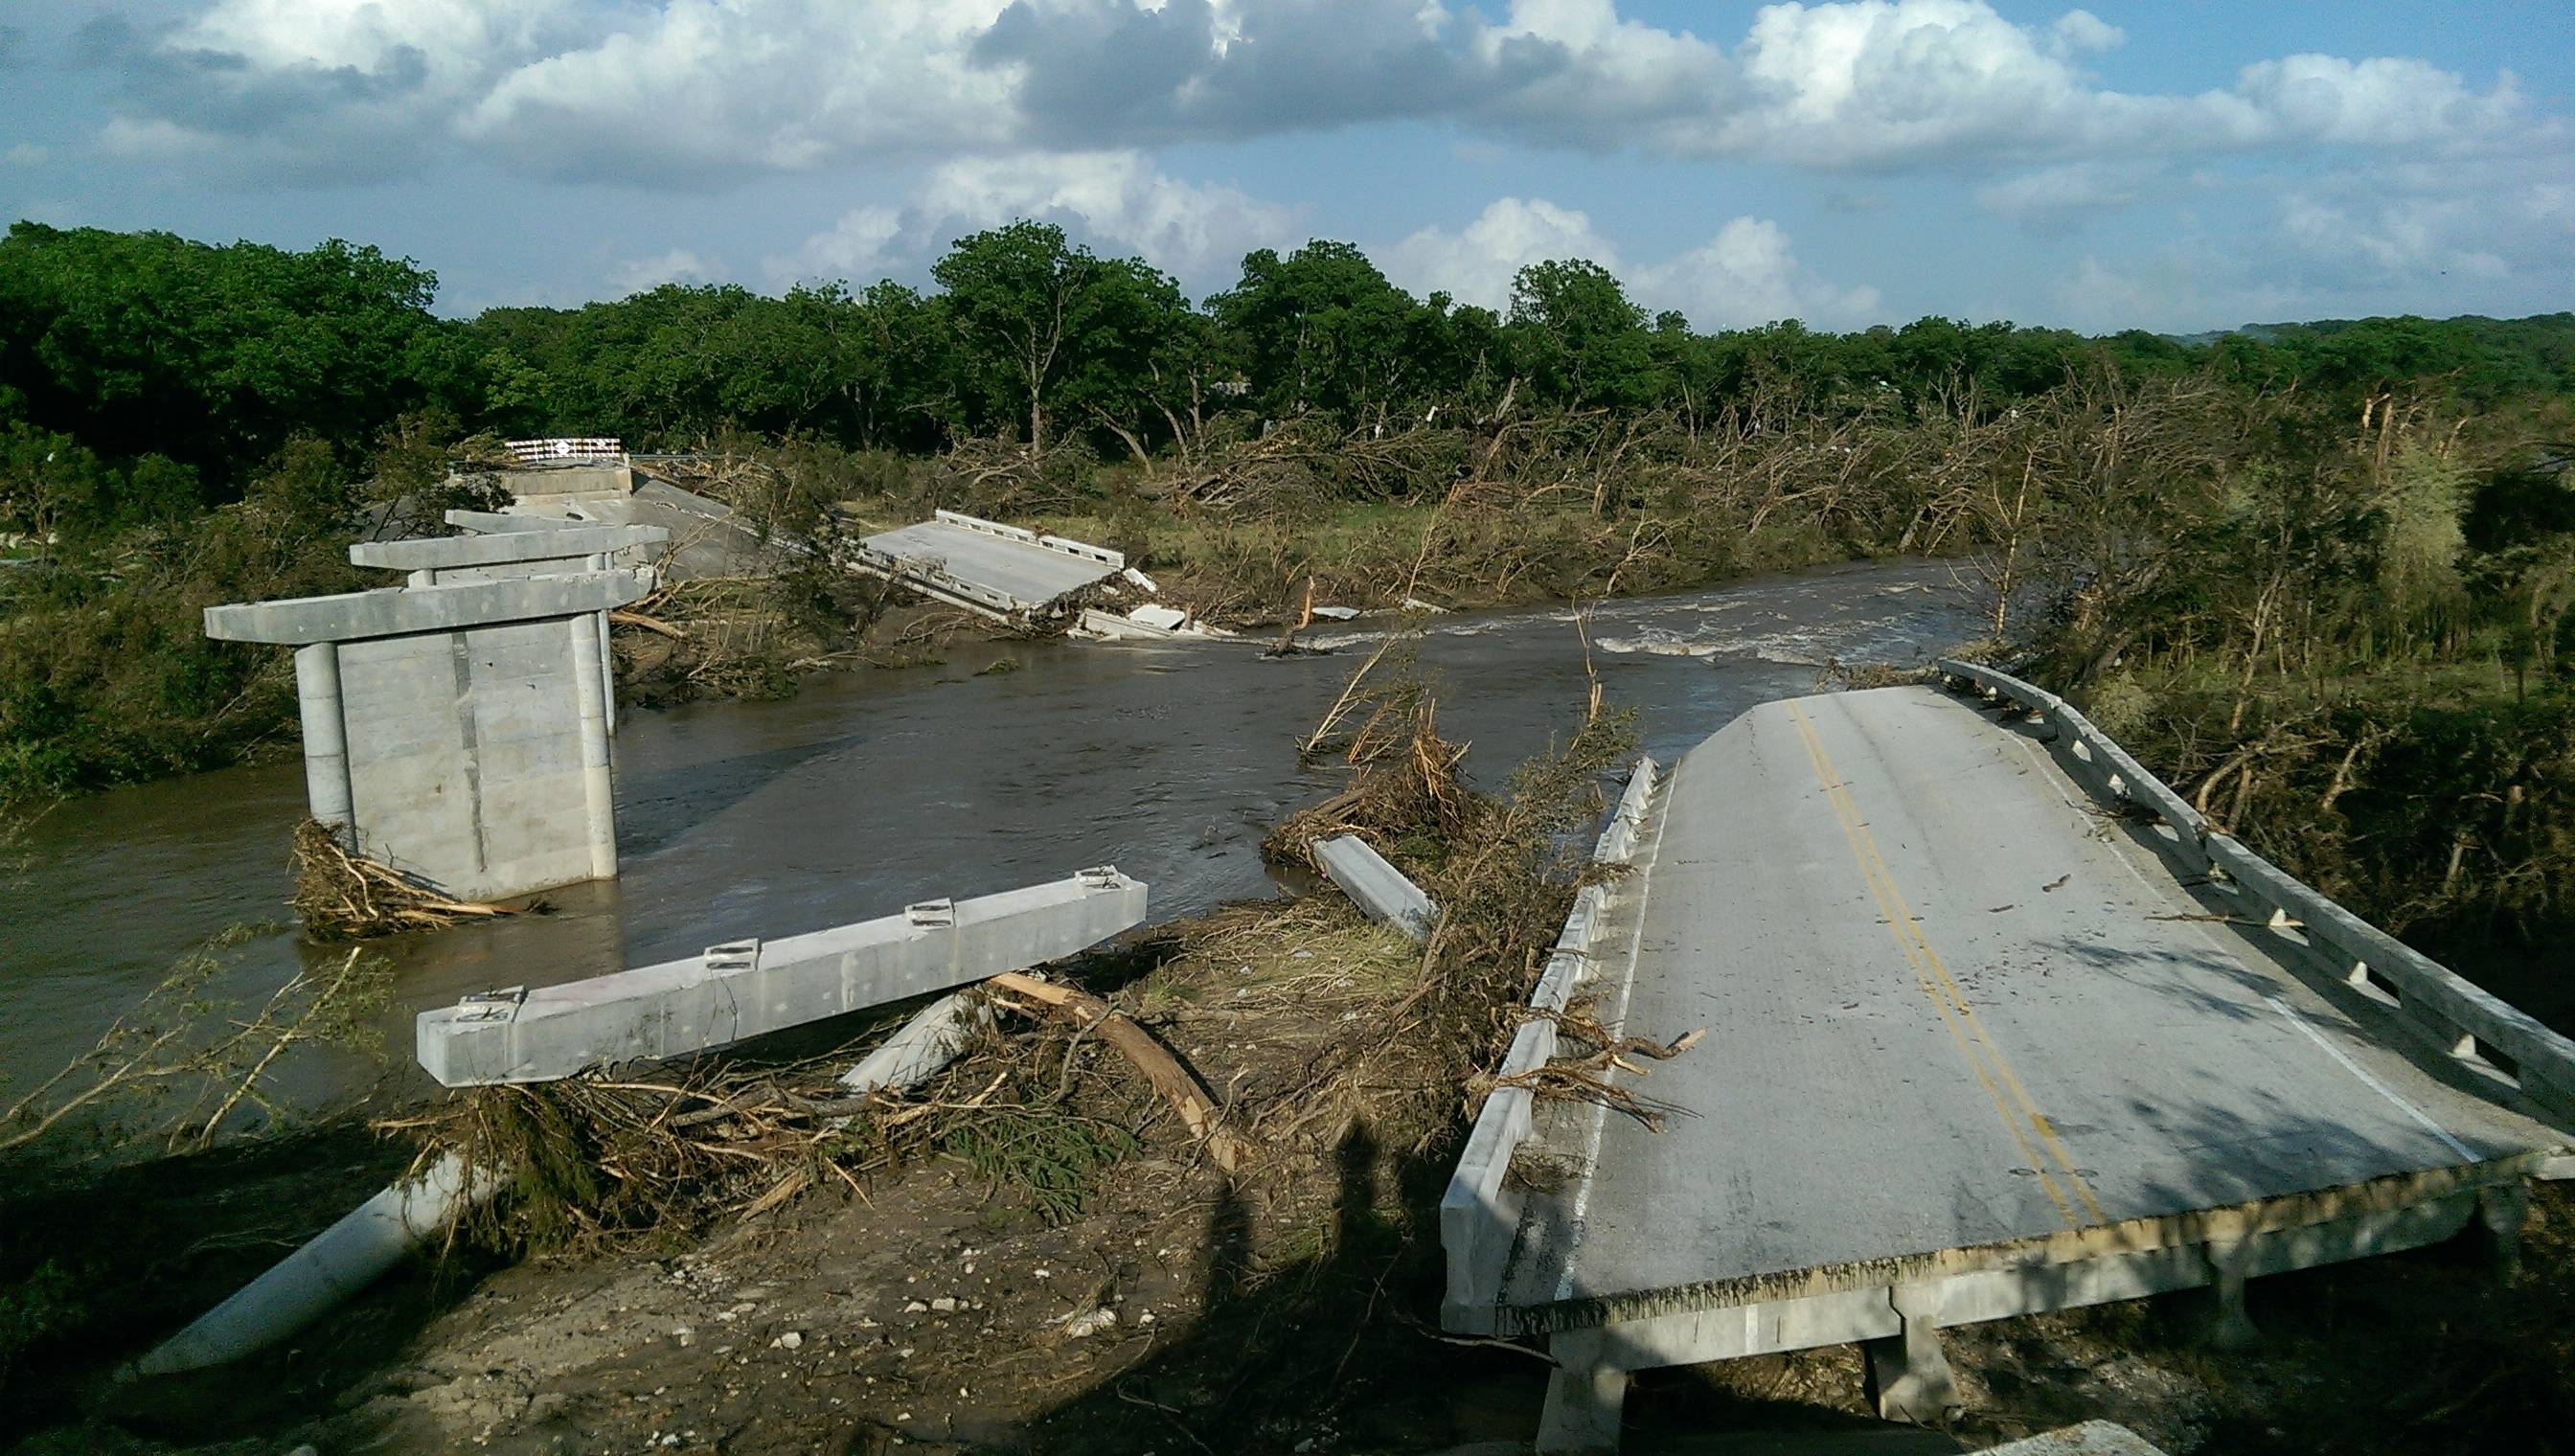 Bridge in central Texas that was taken out by the flooding